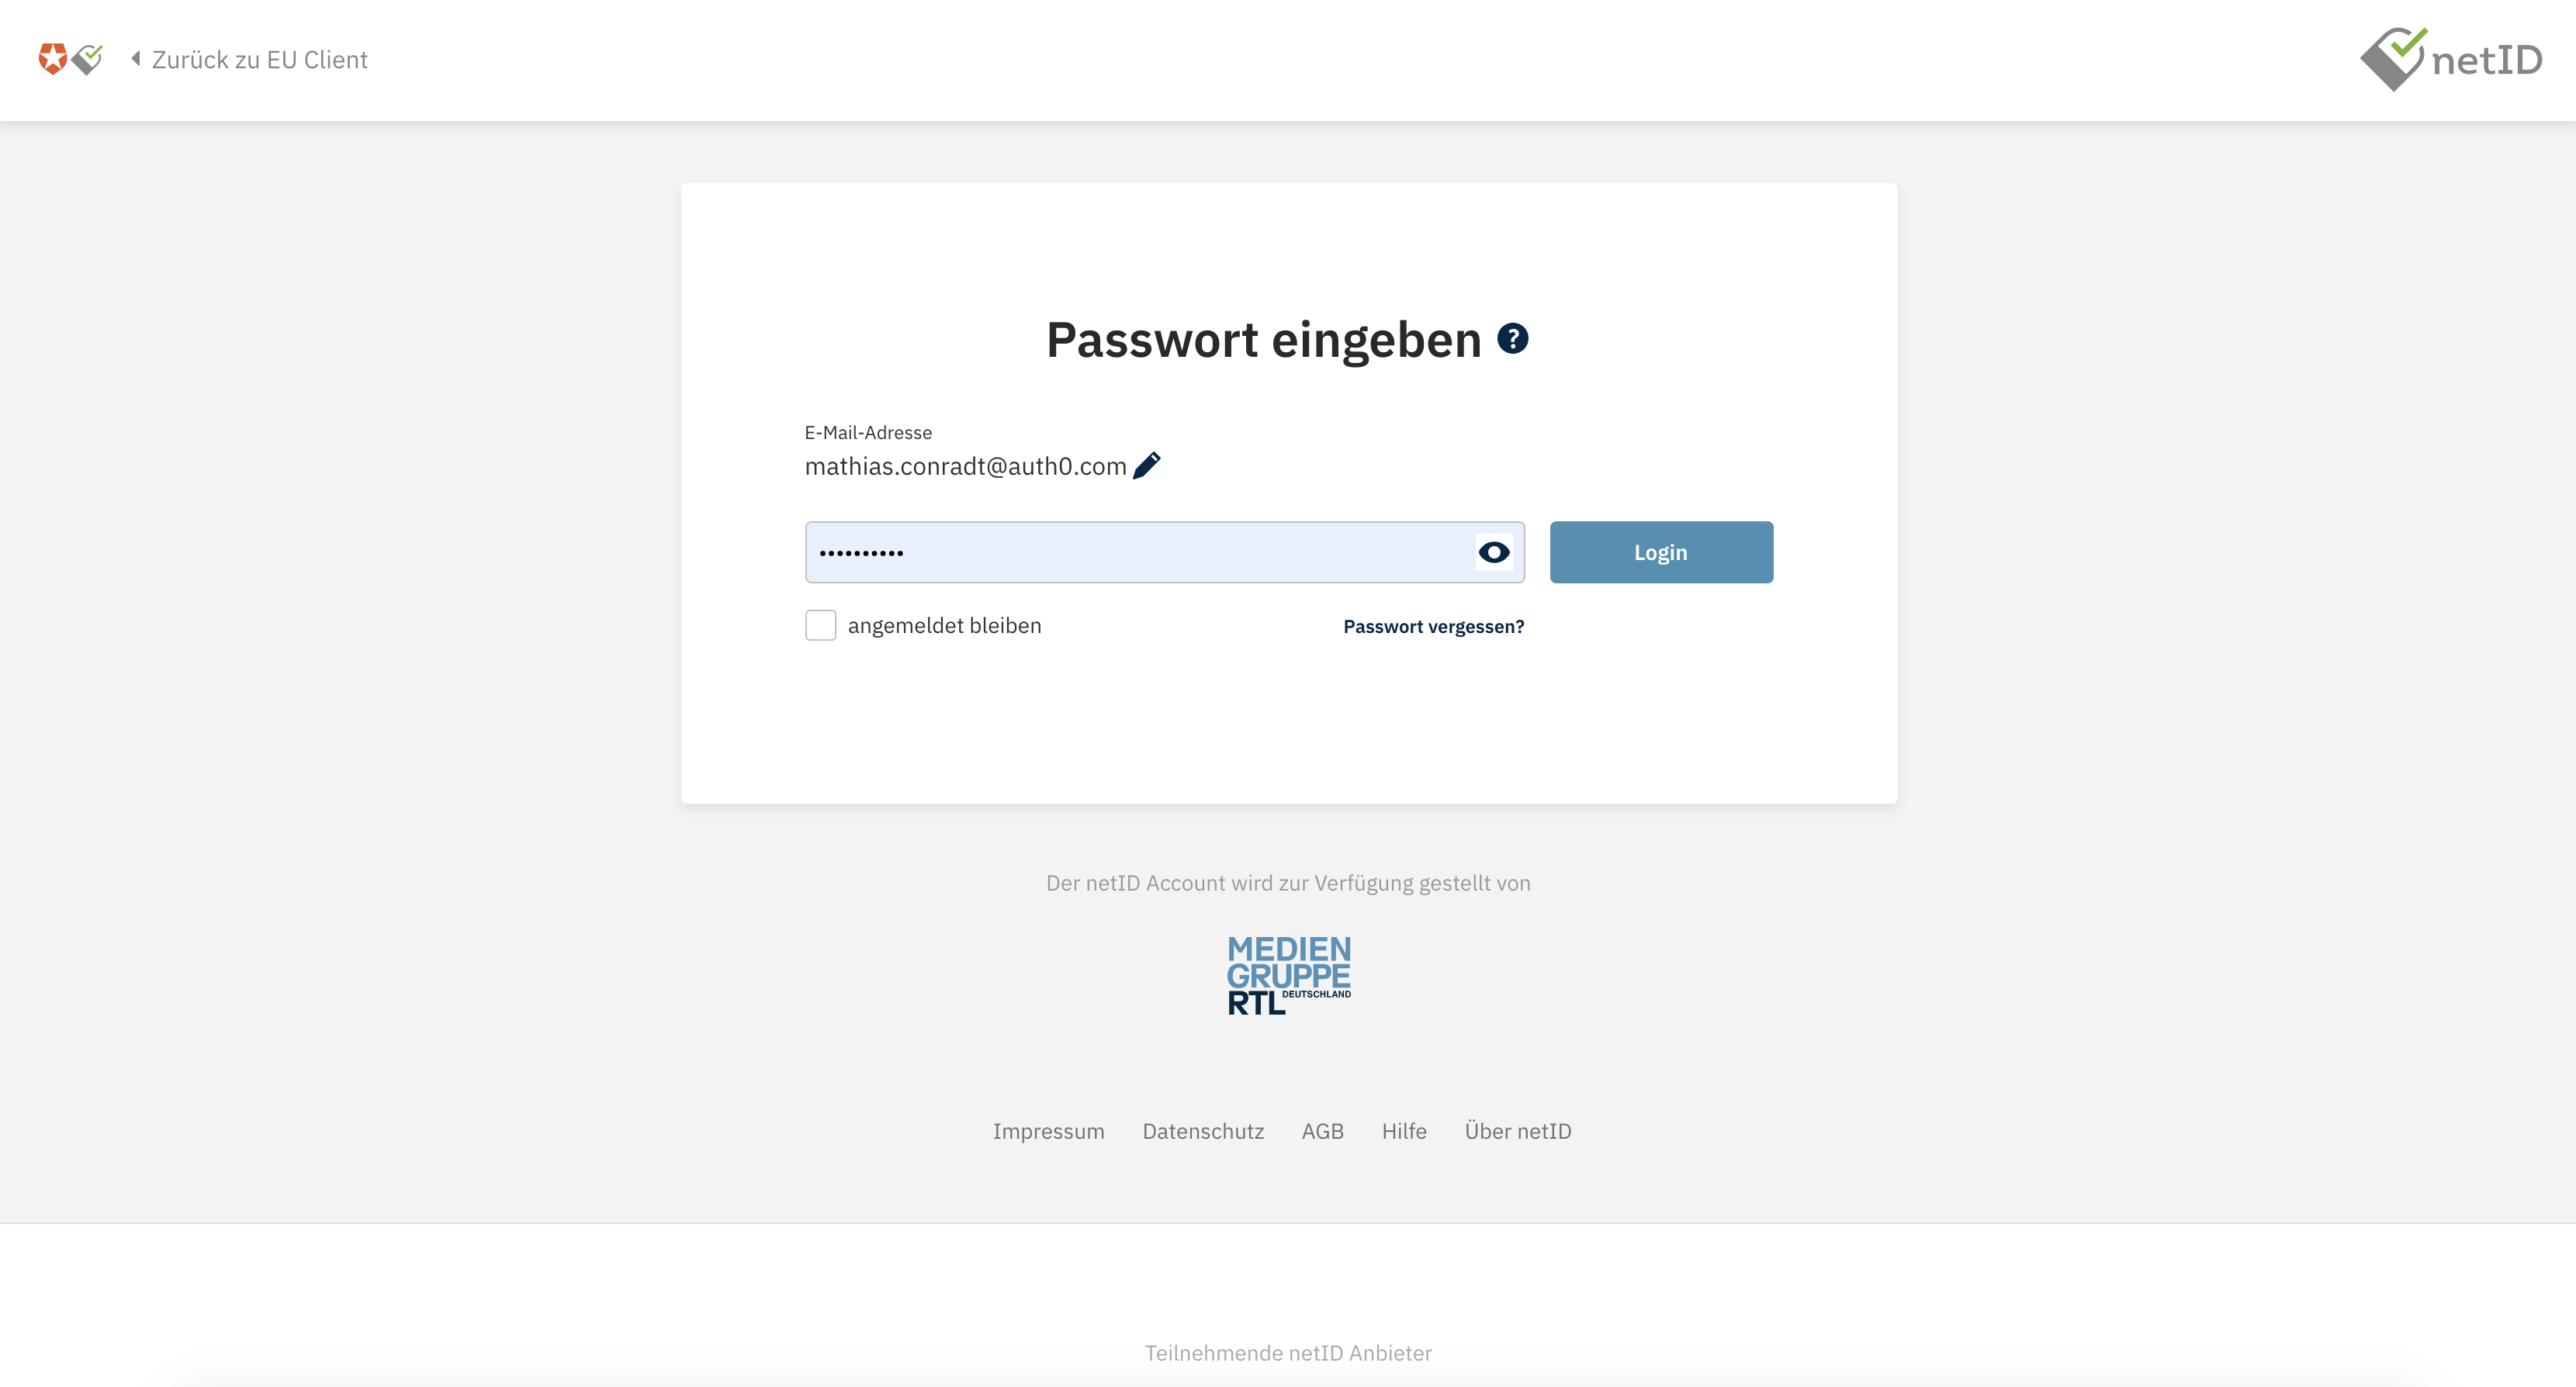 The netID password entry screen